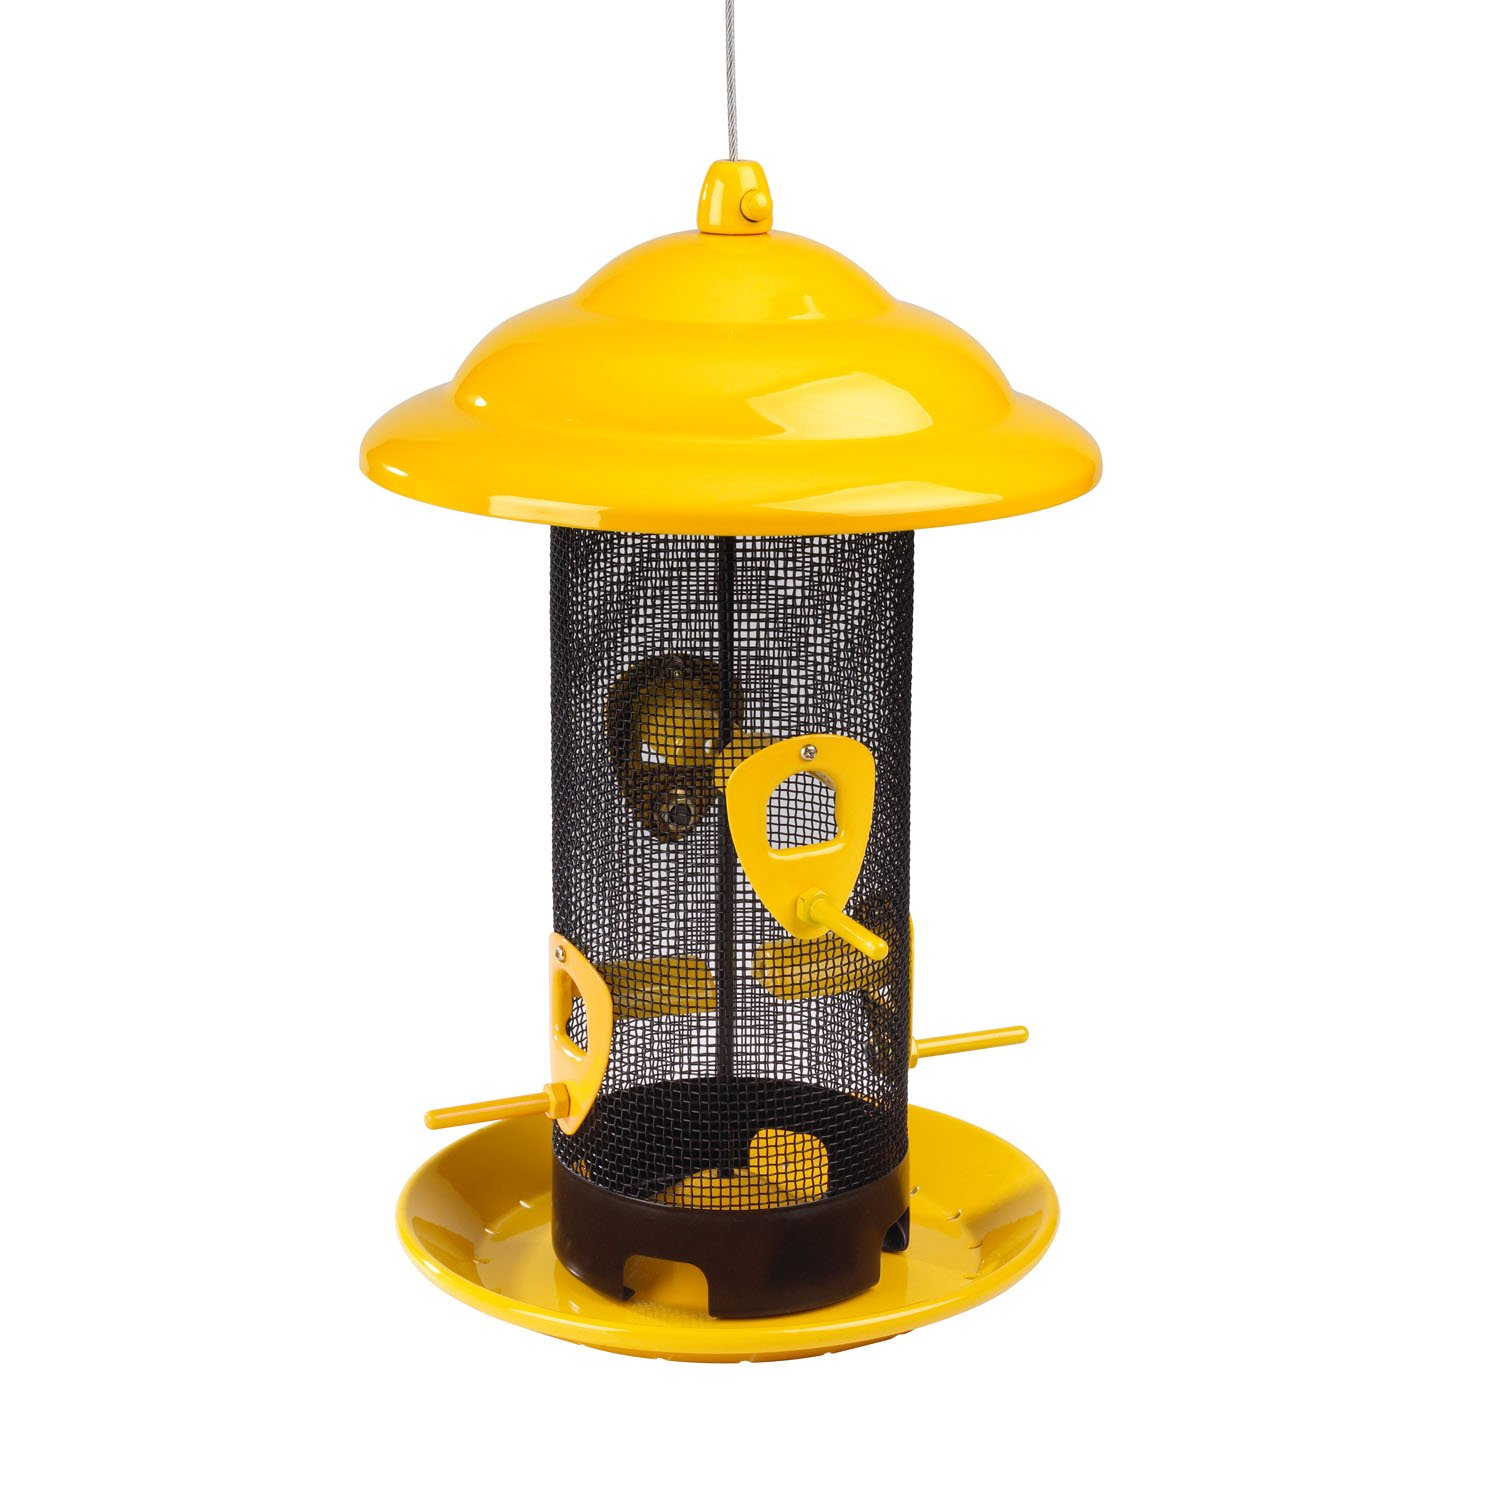 Stokes Select Sedona Screen Feeder, 4 Feeding Ports, 2.6 Pounds Bird Seed Capacity, Yellow